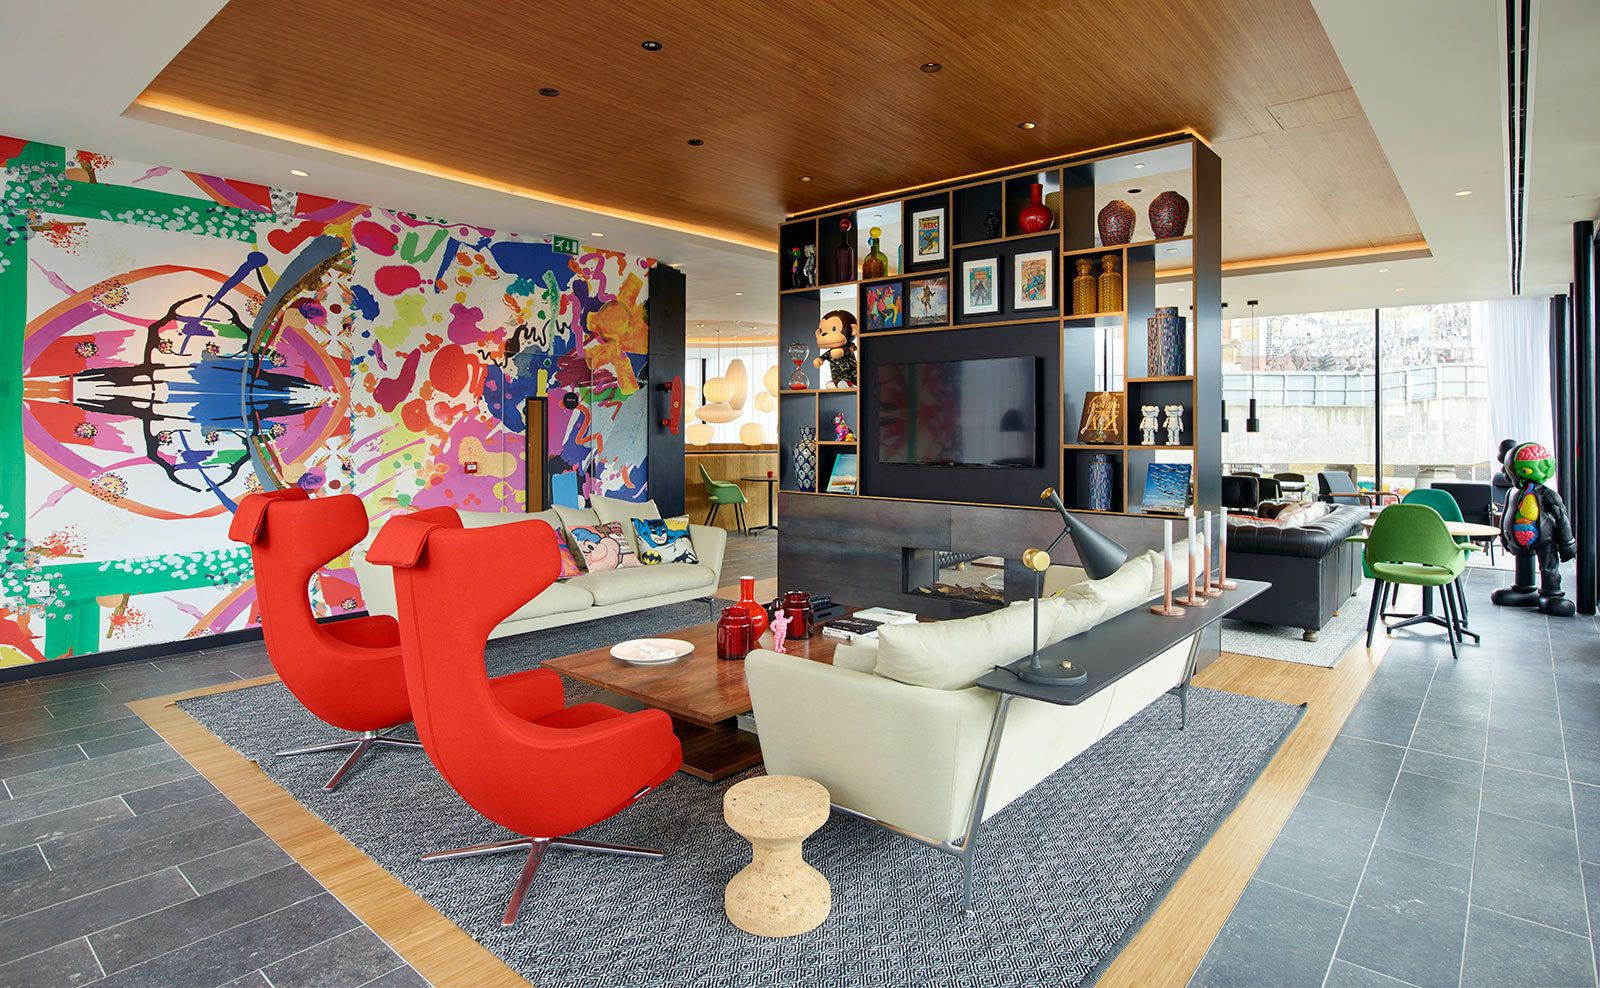 citizenM Takes London | City art, Citizenm london and Interiors